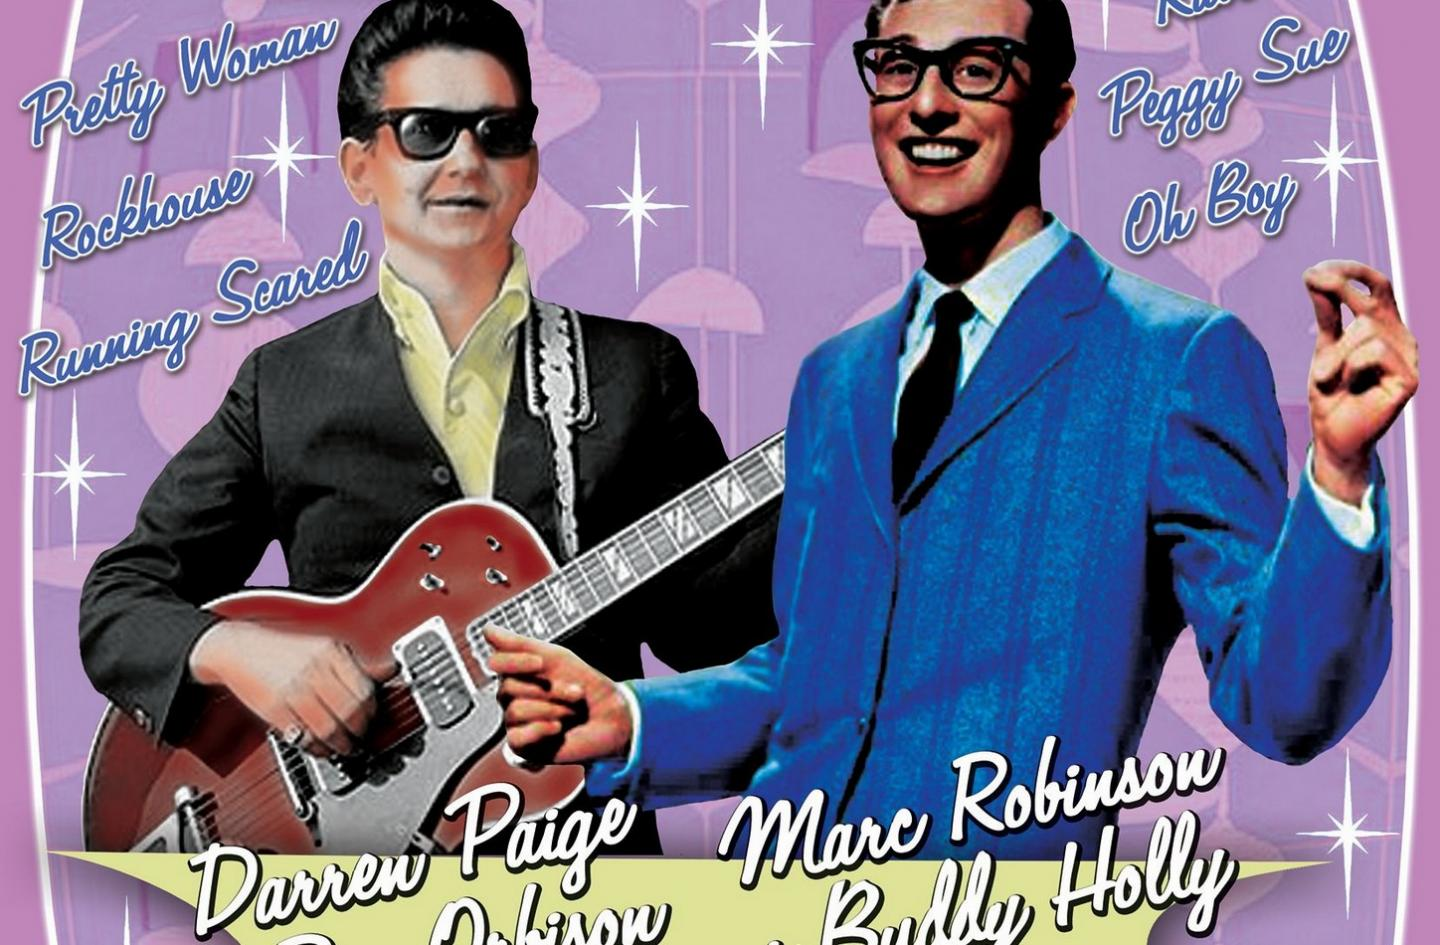 Through the Decades Roy Orbison and Buddy Holly